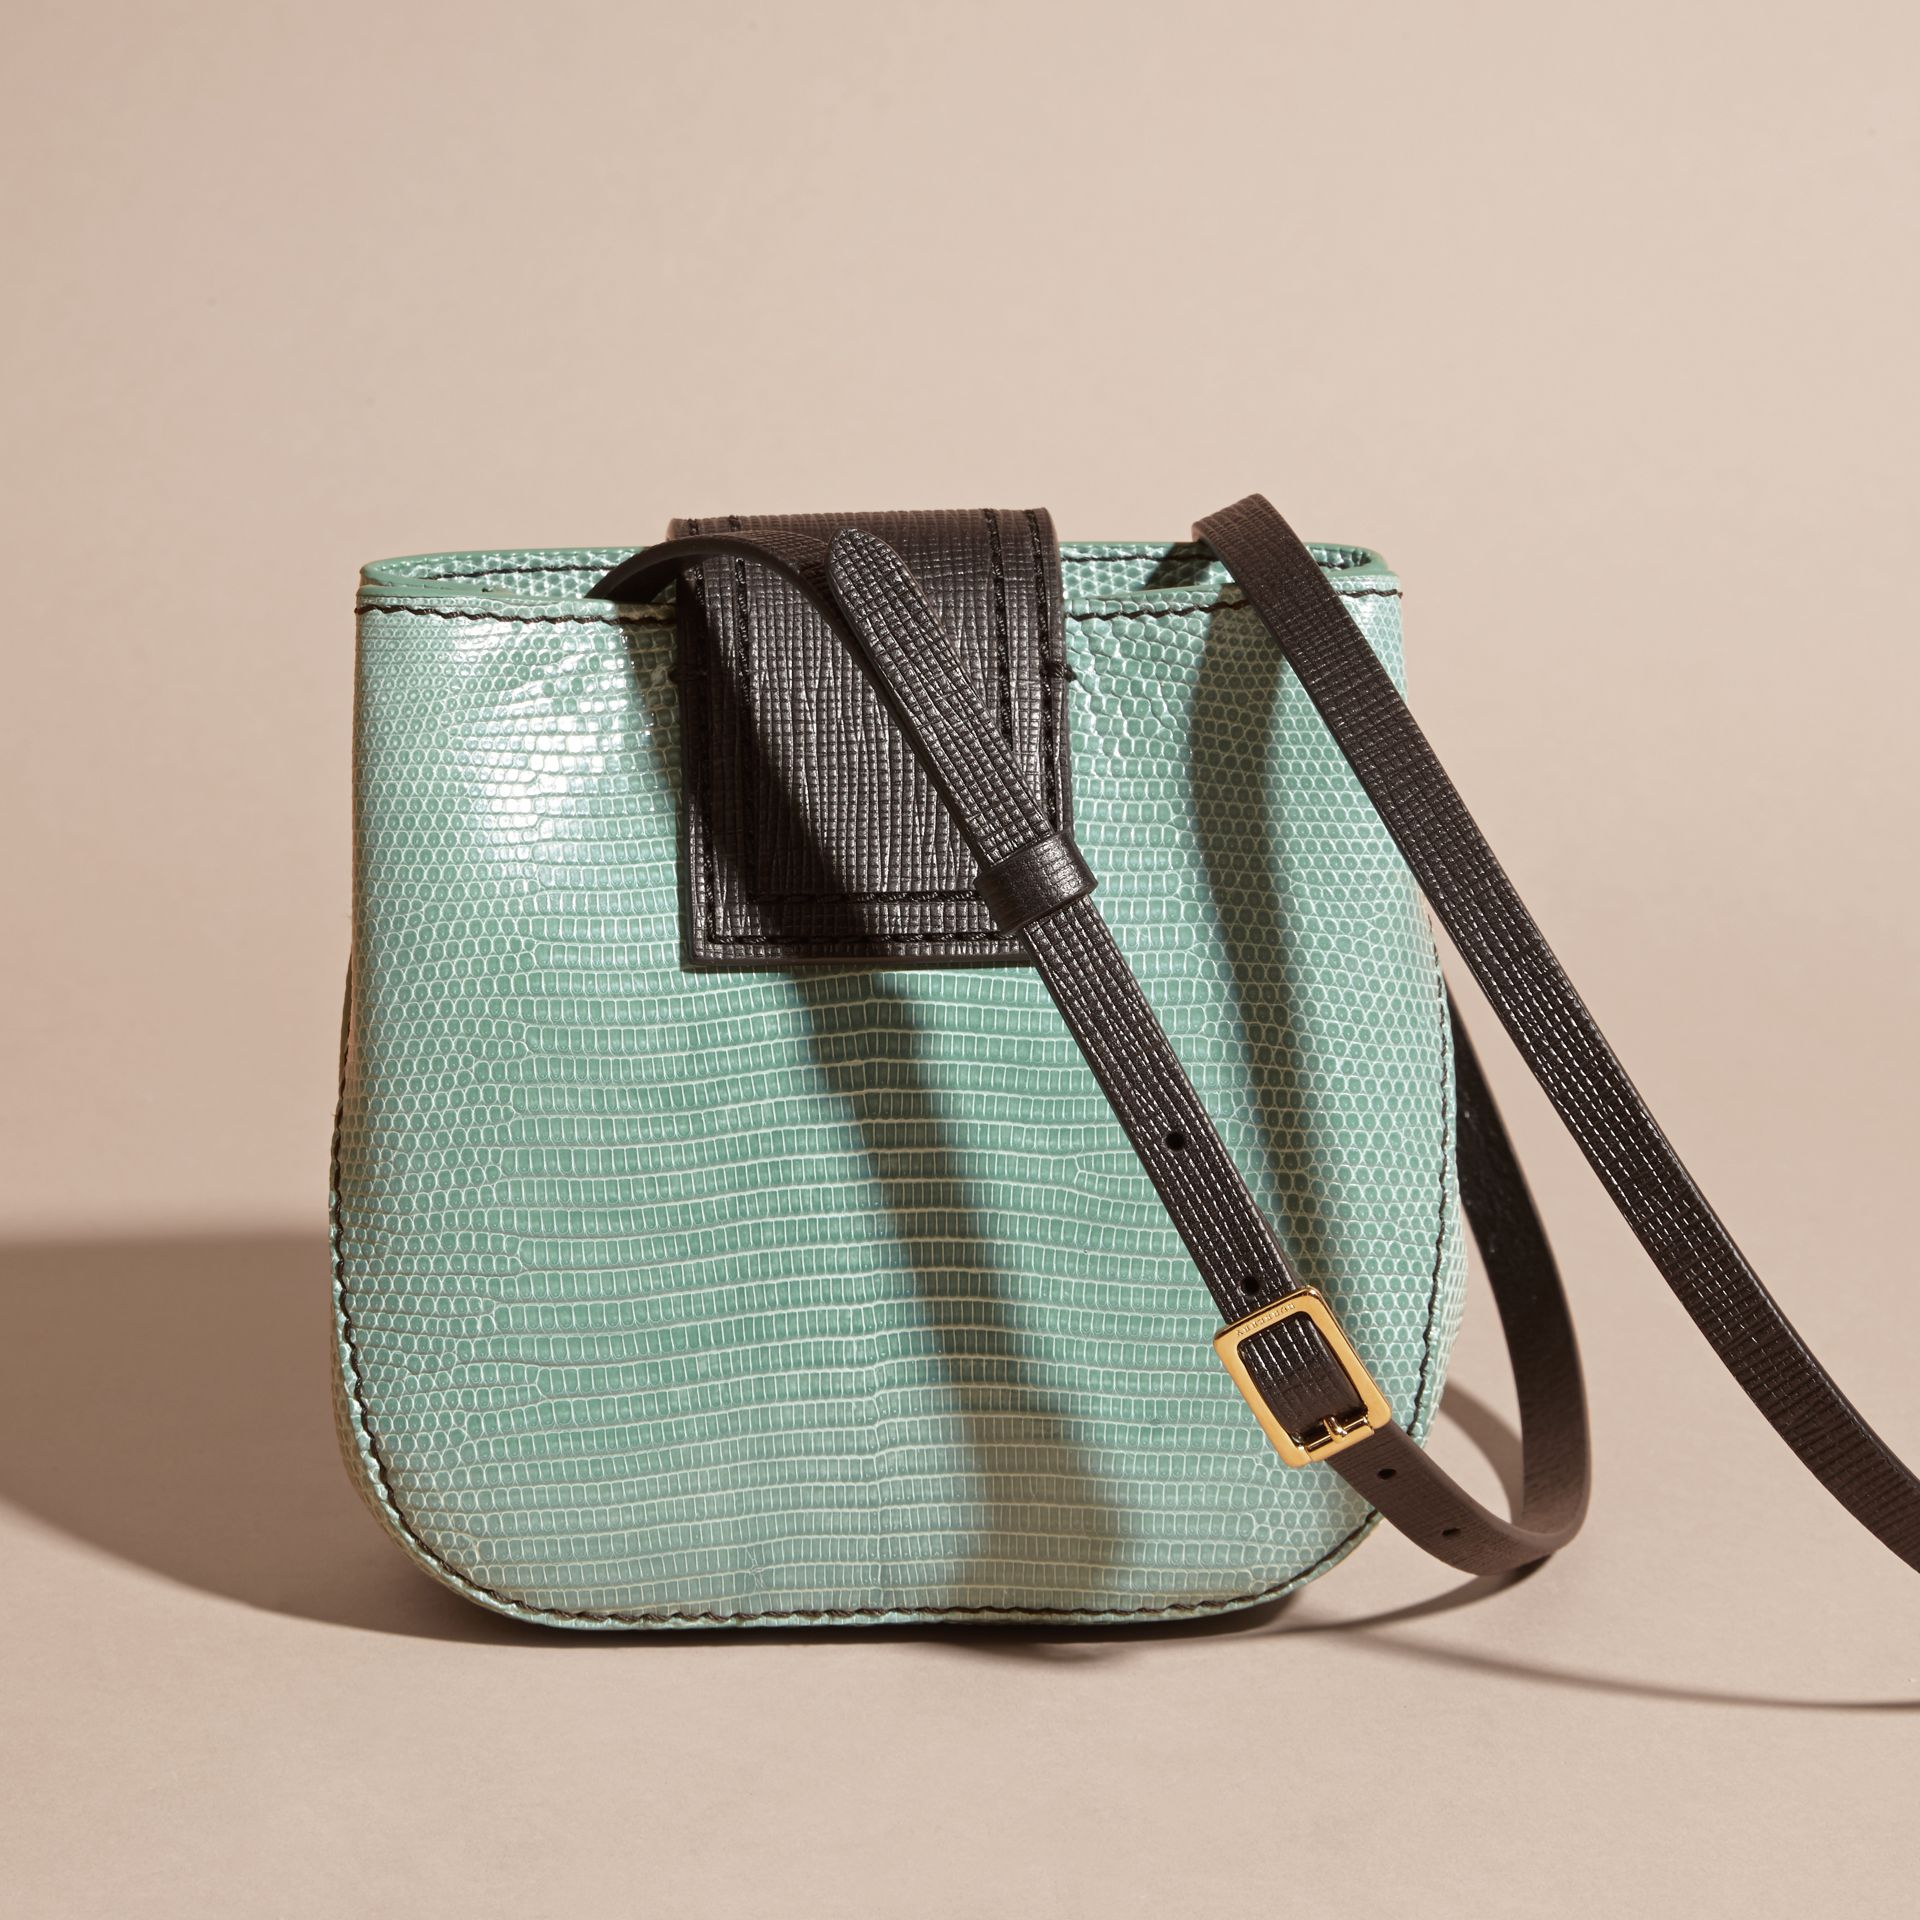 Dusty mint The Small Square Buckle Bag in Lizard - gallery image 3